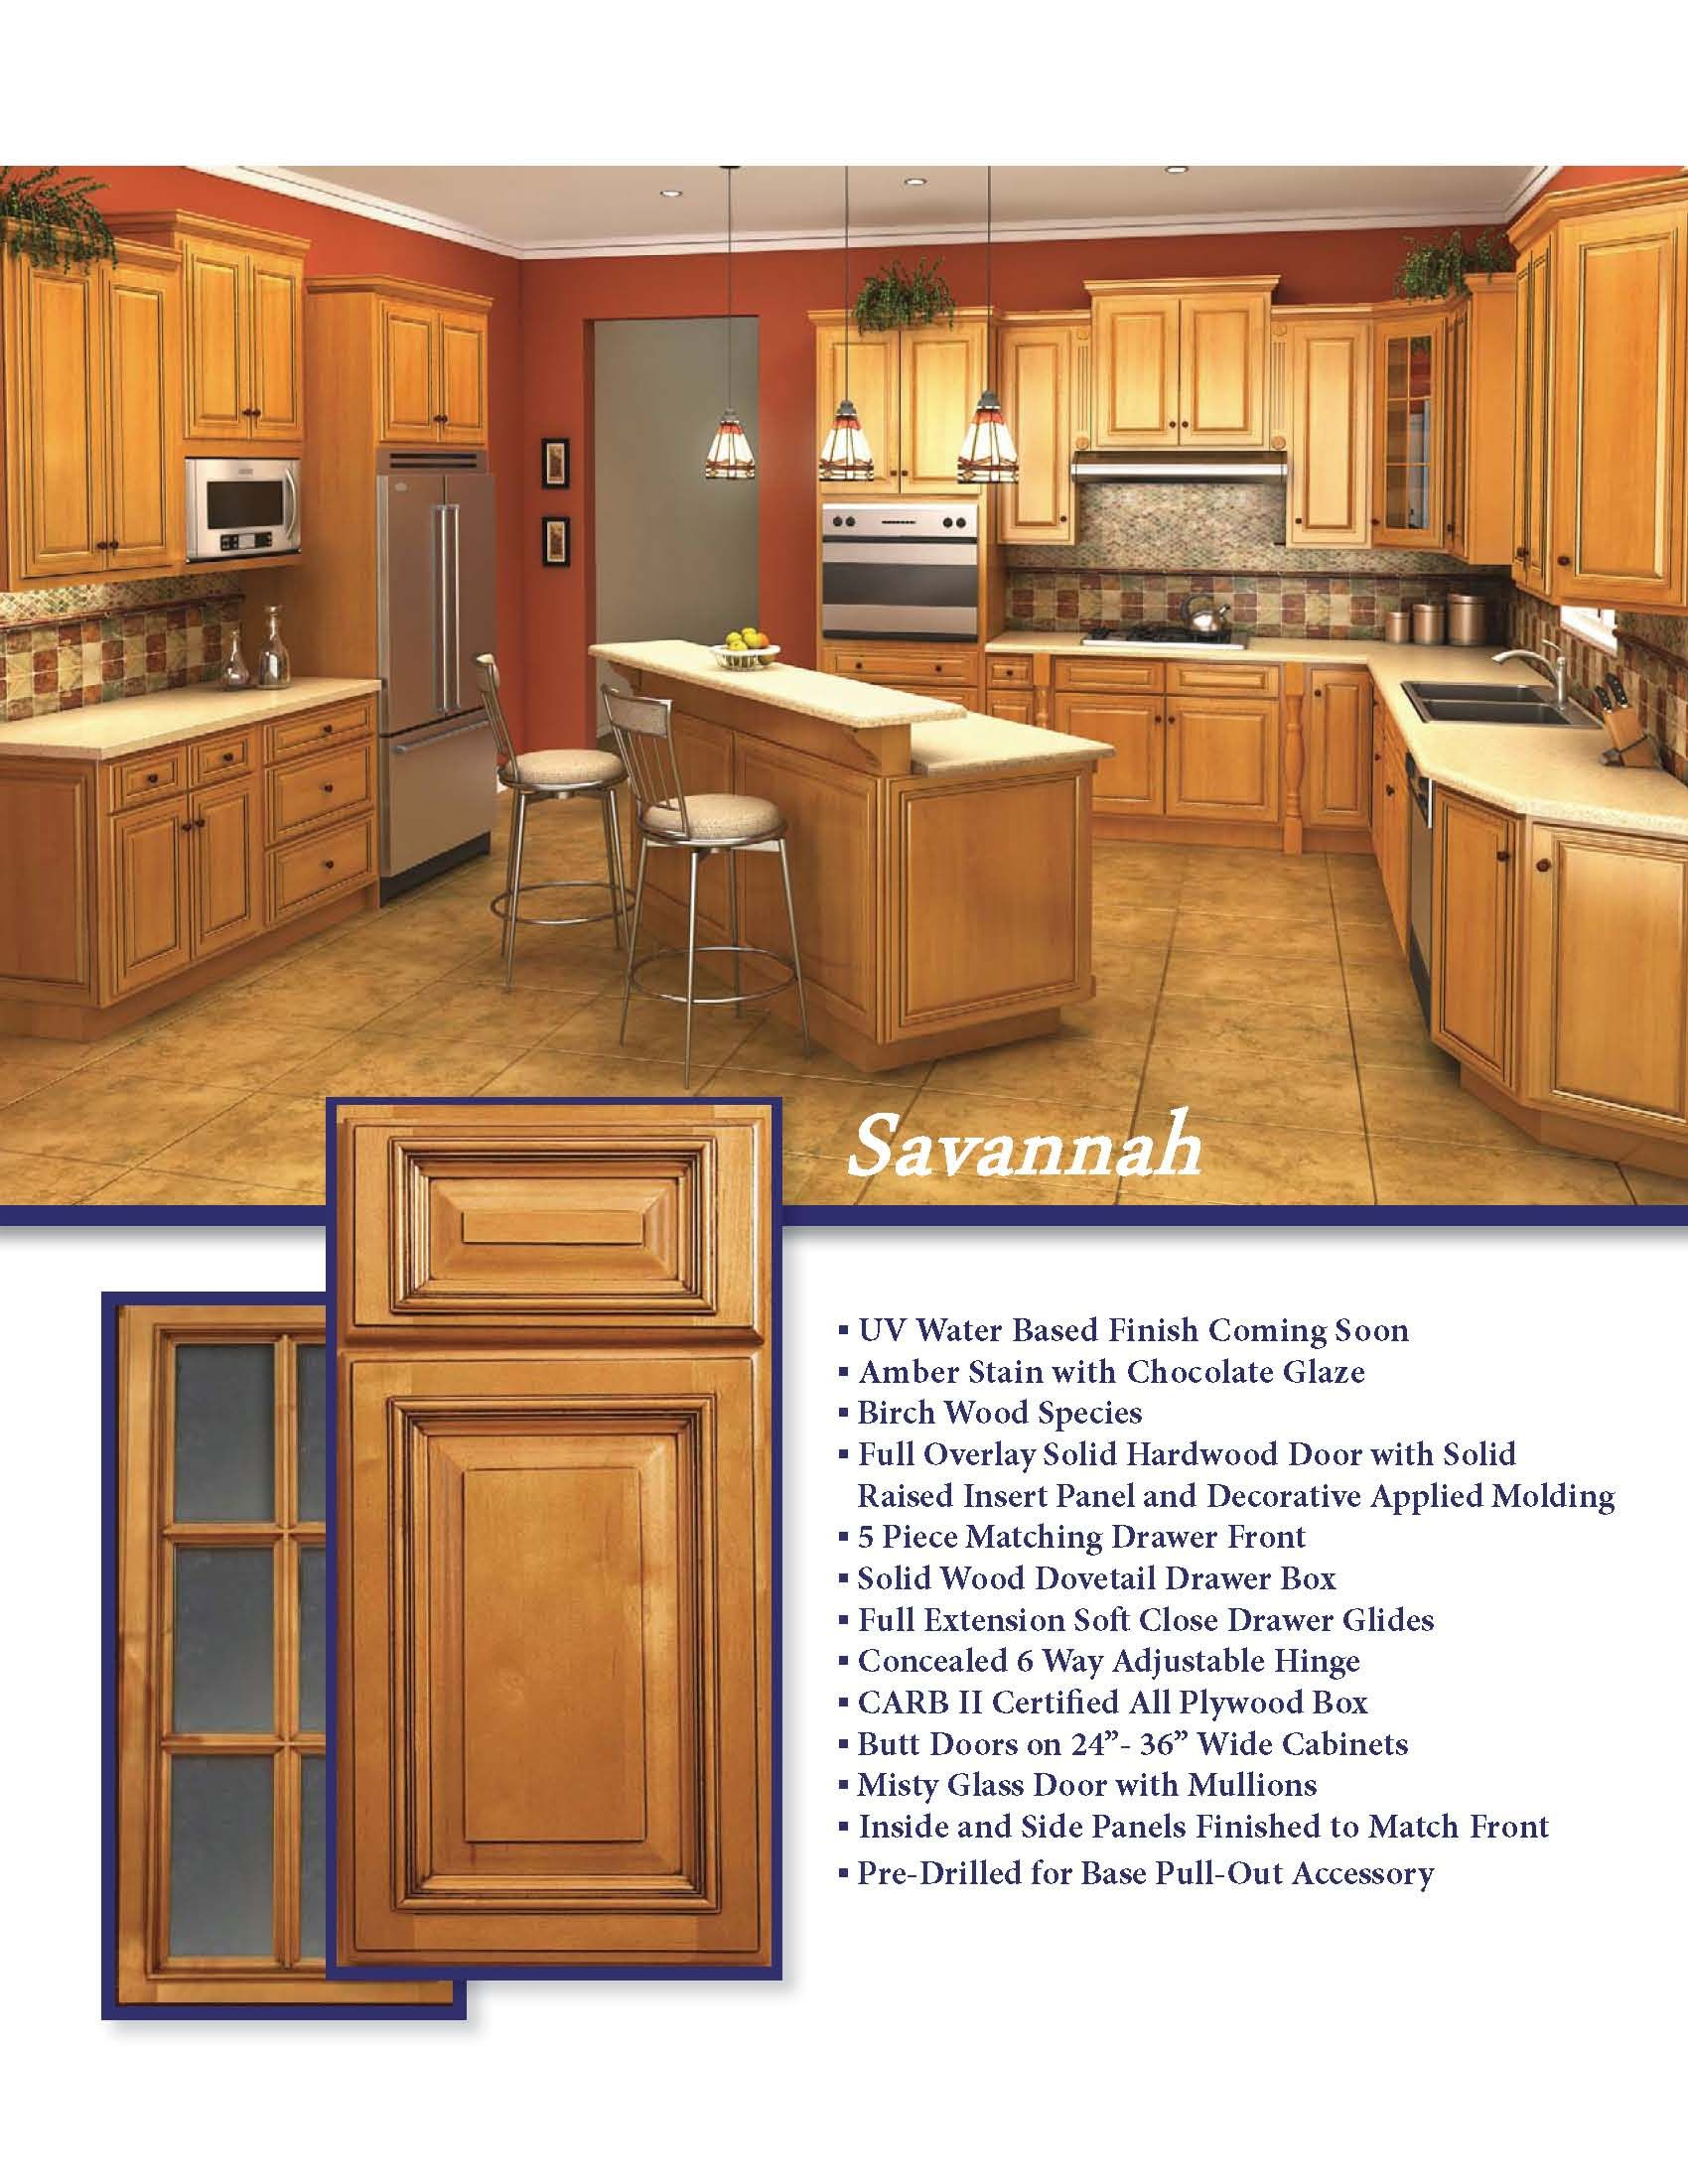 Instyle elegance with the savannah style rta kitchen cabinets